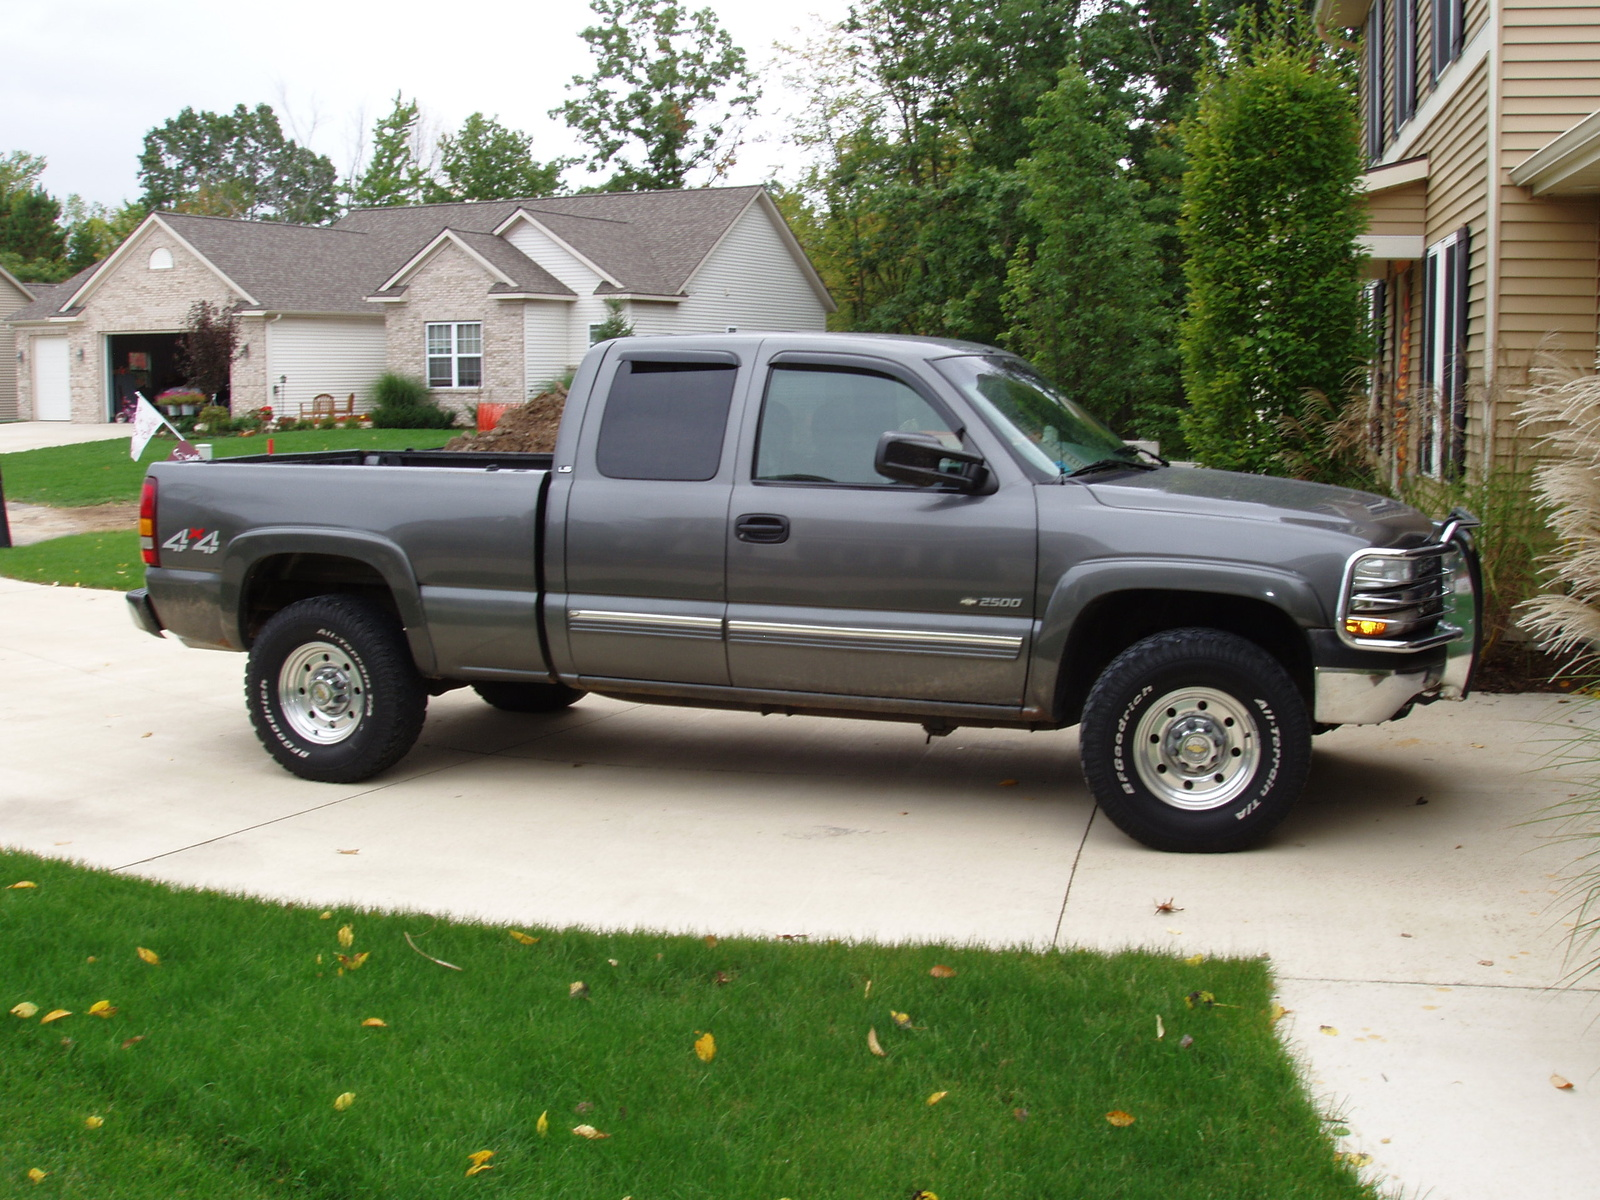 2000 Chevrolet Silverado 2500 3 Dr LS 4WD Extended Cab SB HD picture,